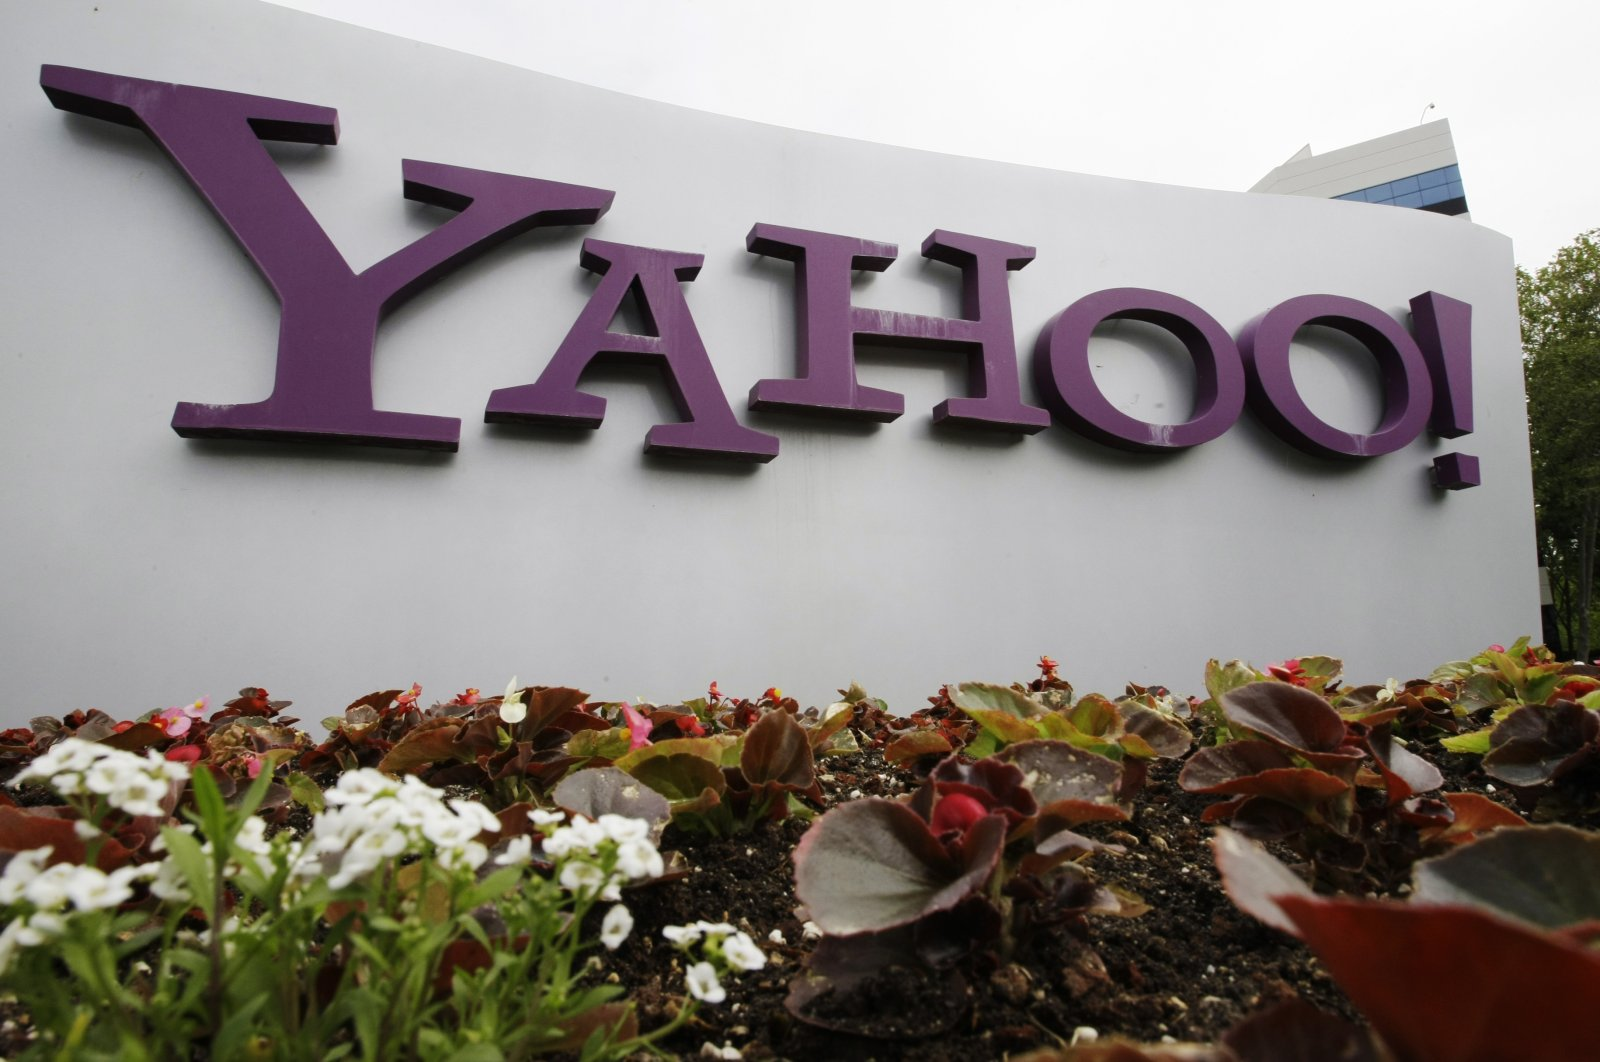 The Yahoo logo is displayed outside of offices in Santa Clara, California, U.S., April 18, 2011. (AP Photo)